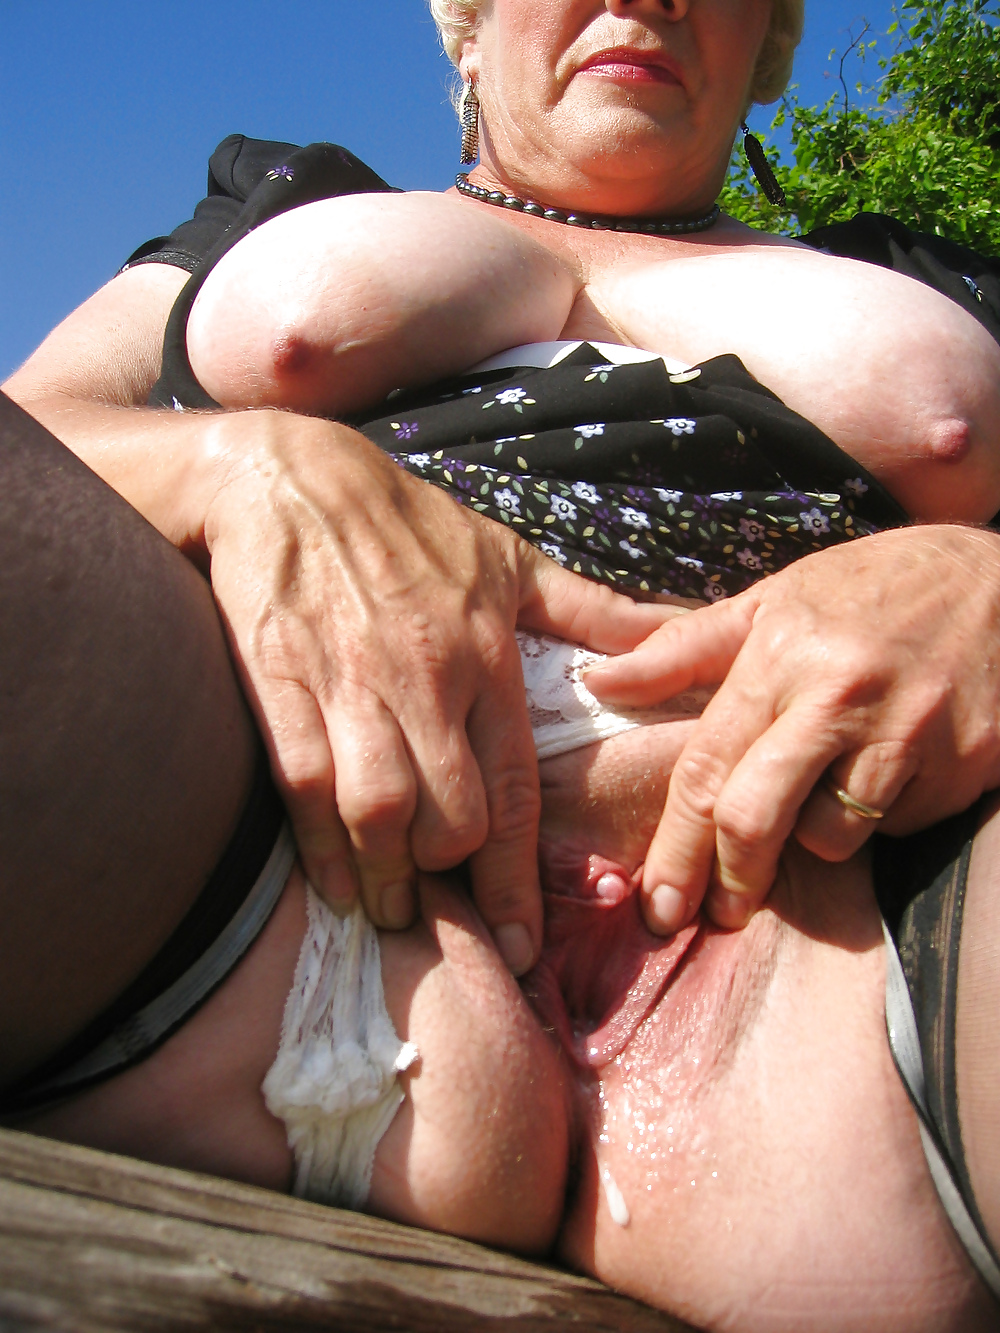 Grandmas clit sex photos — photo 9